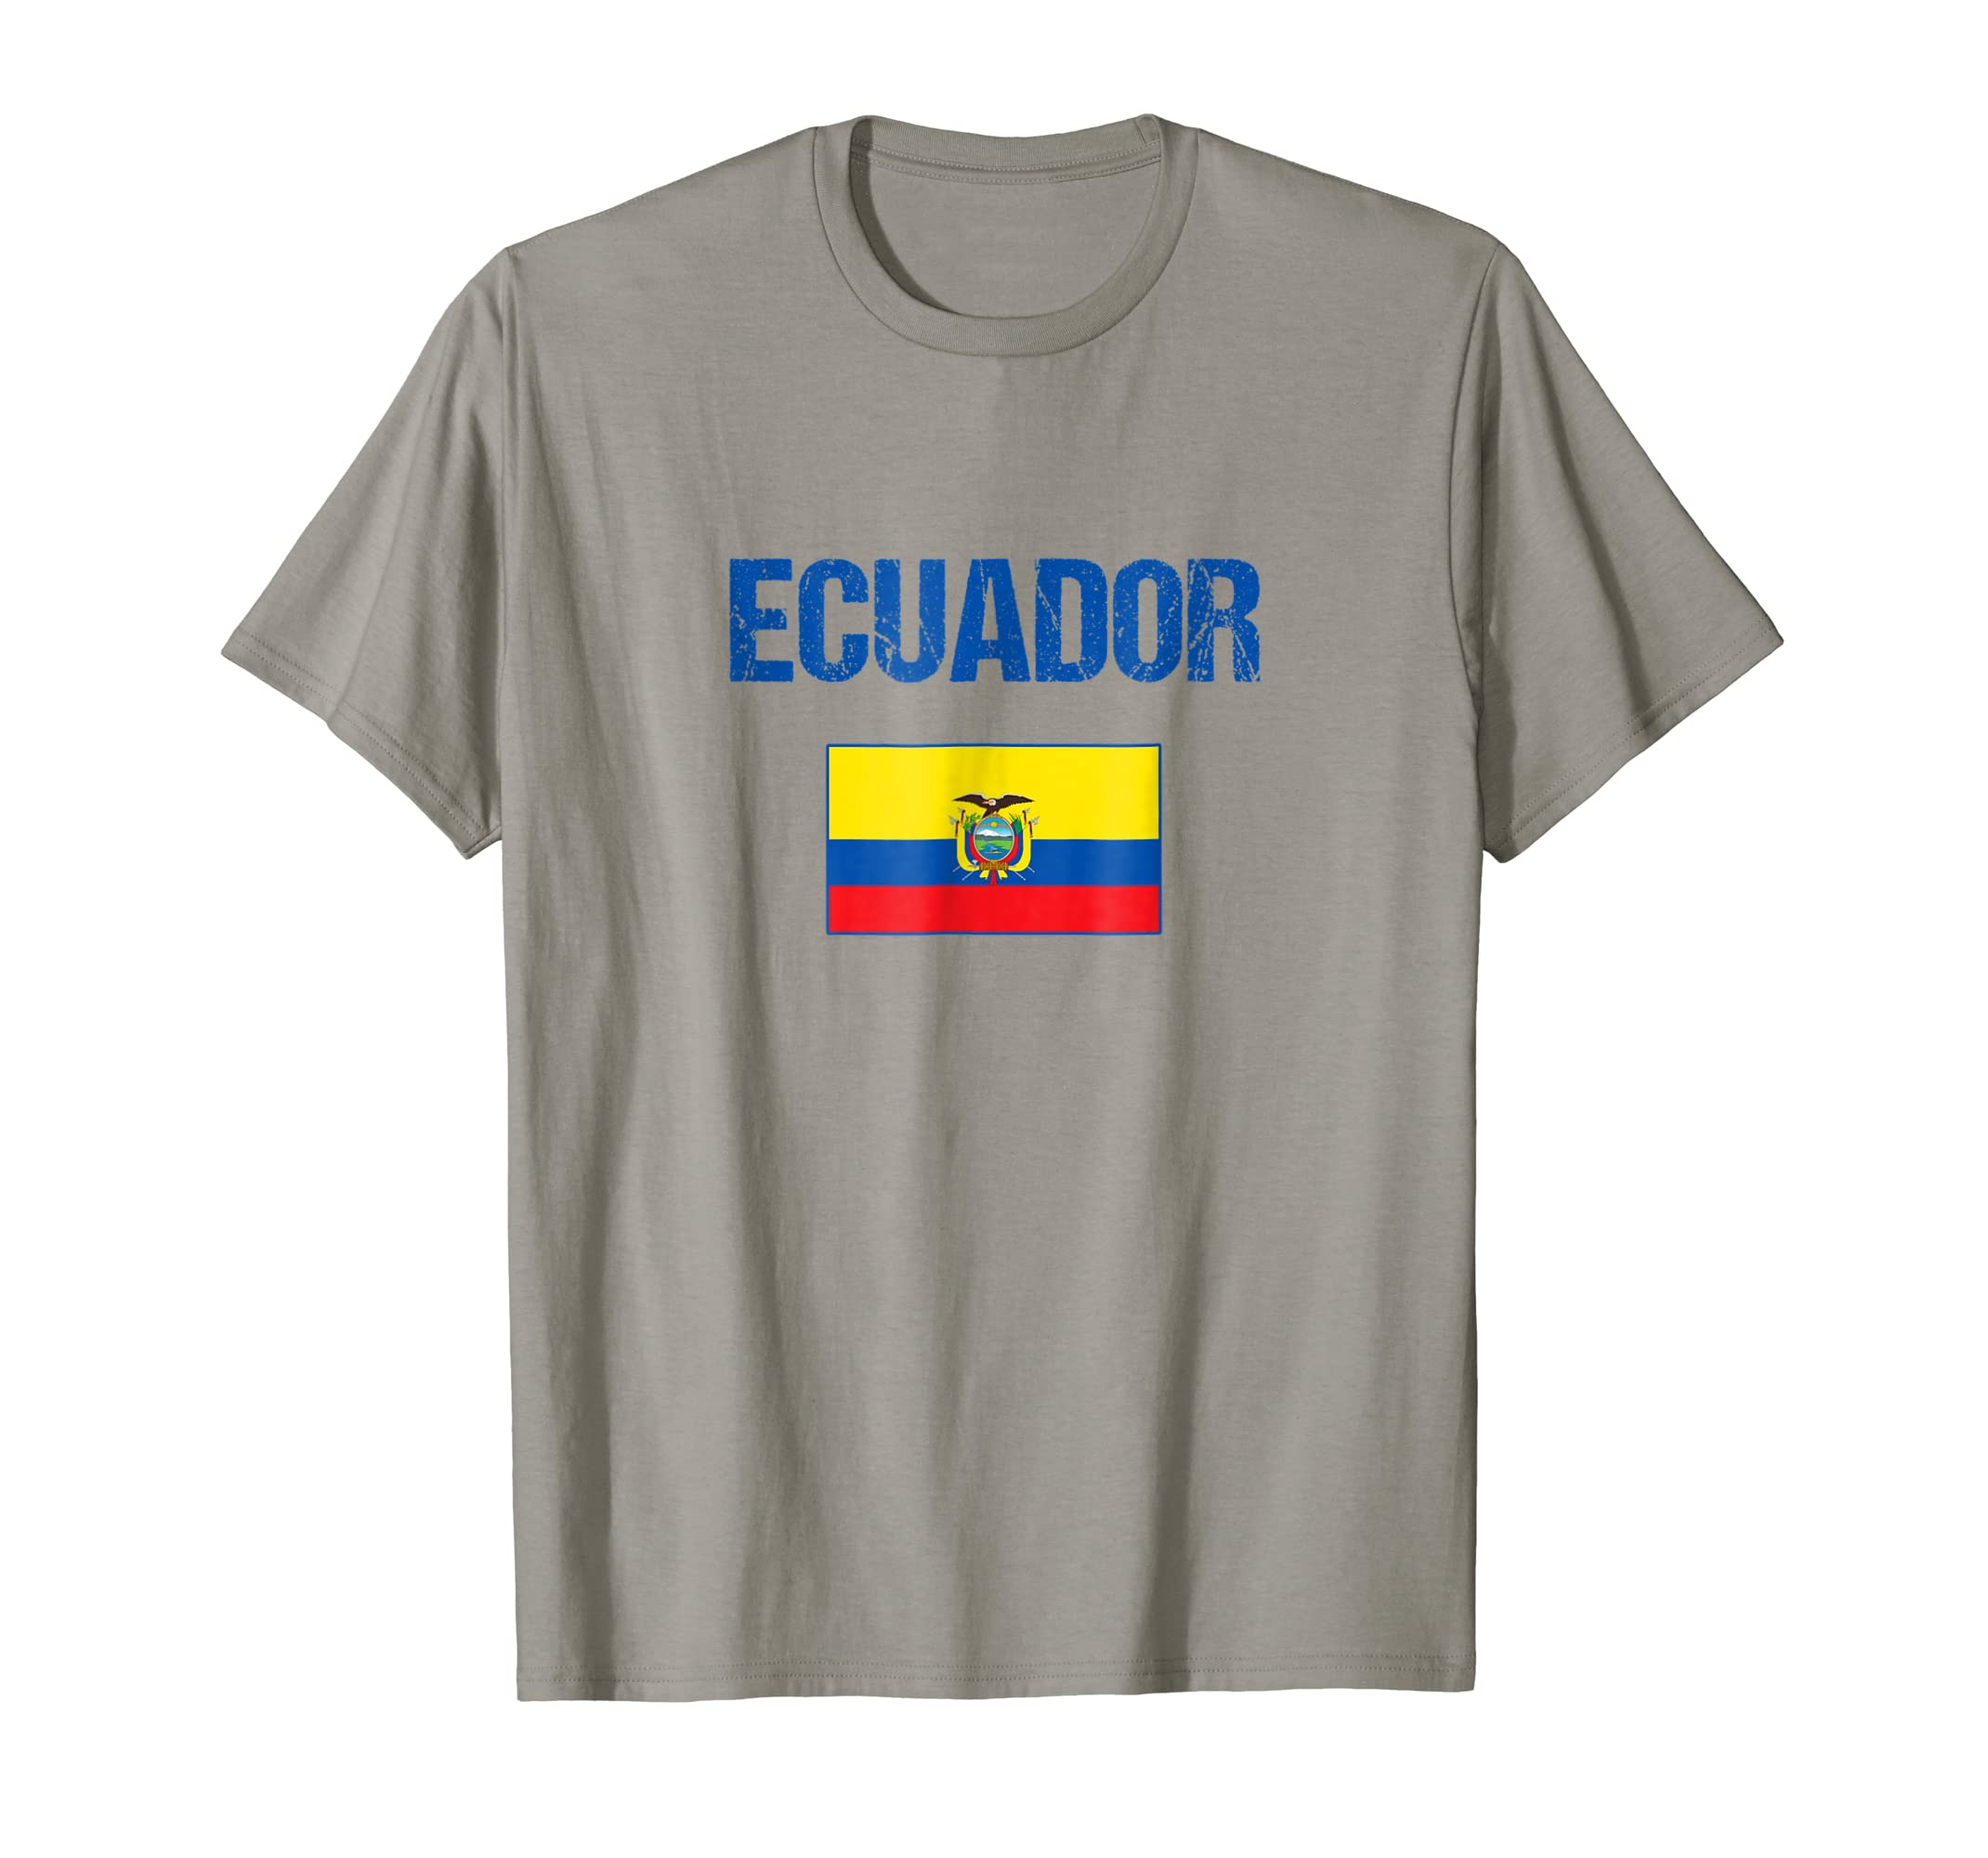 Amazon.com: Ecuador T-shirt Ecuadorian Flag Tee For Men/Women/Youth/Kids: Clothing